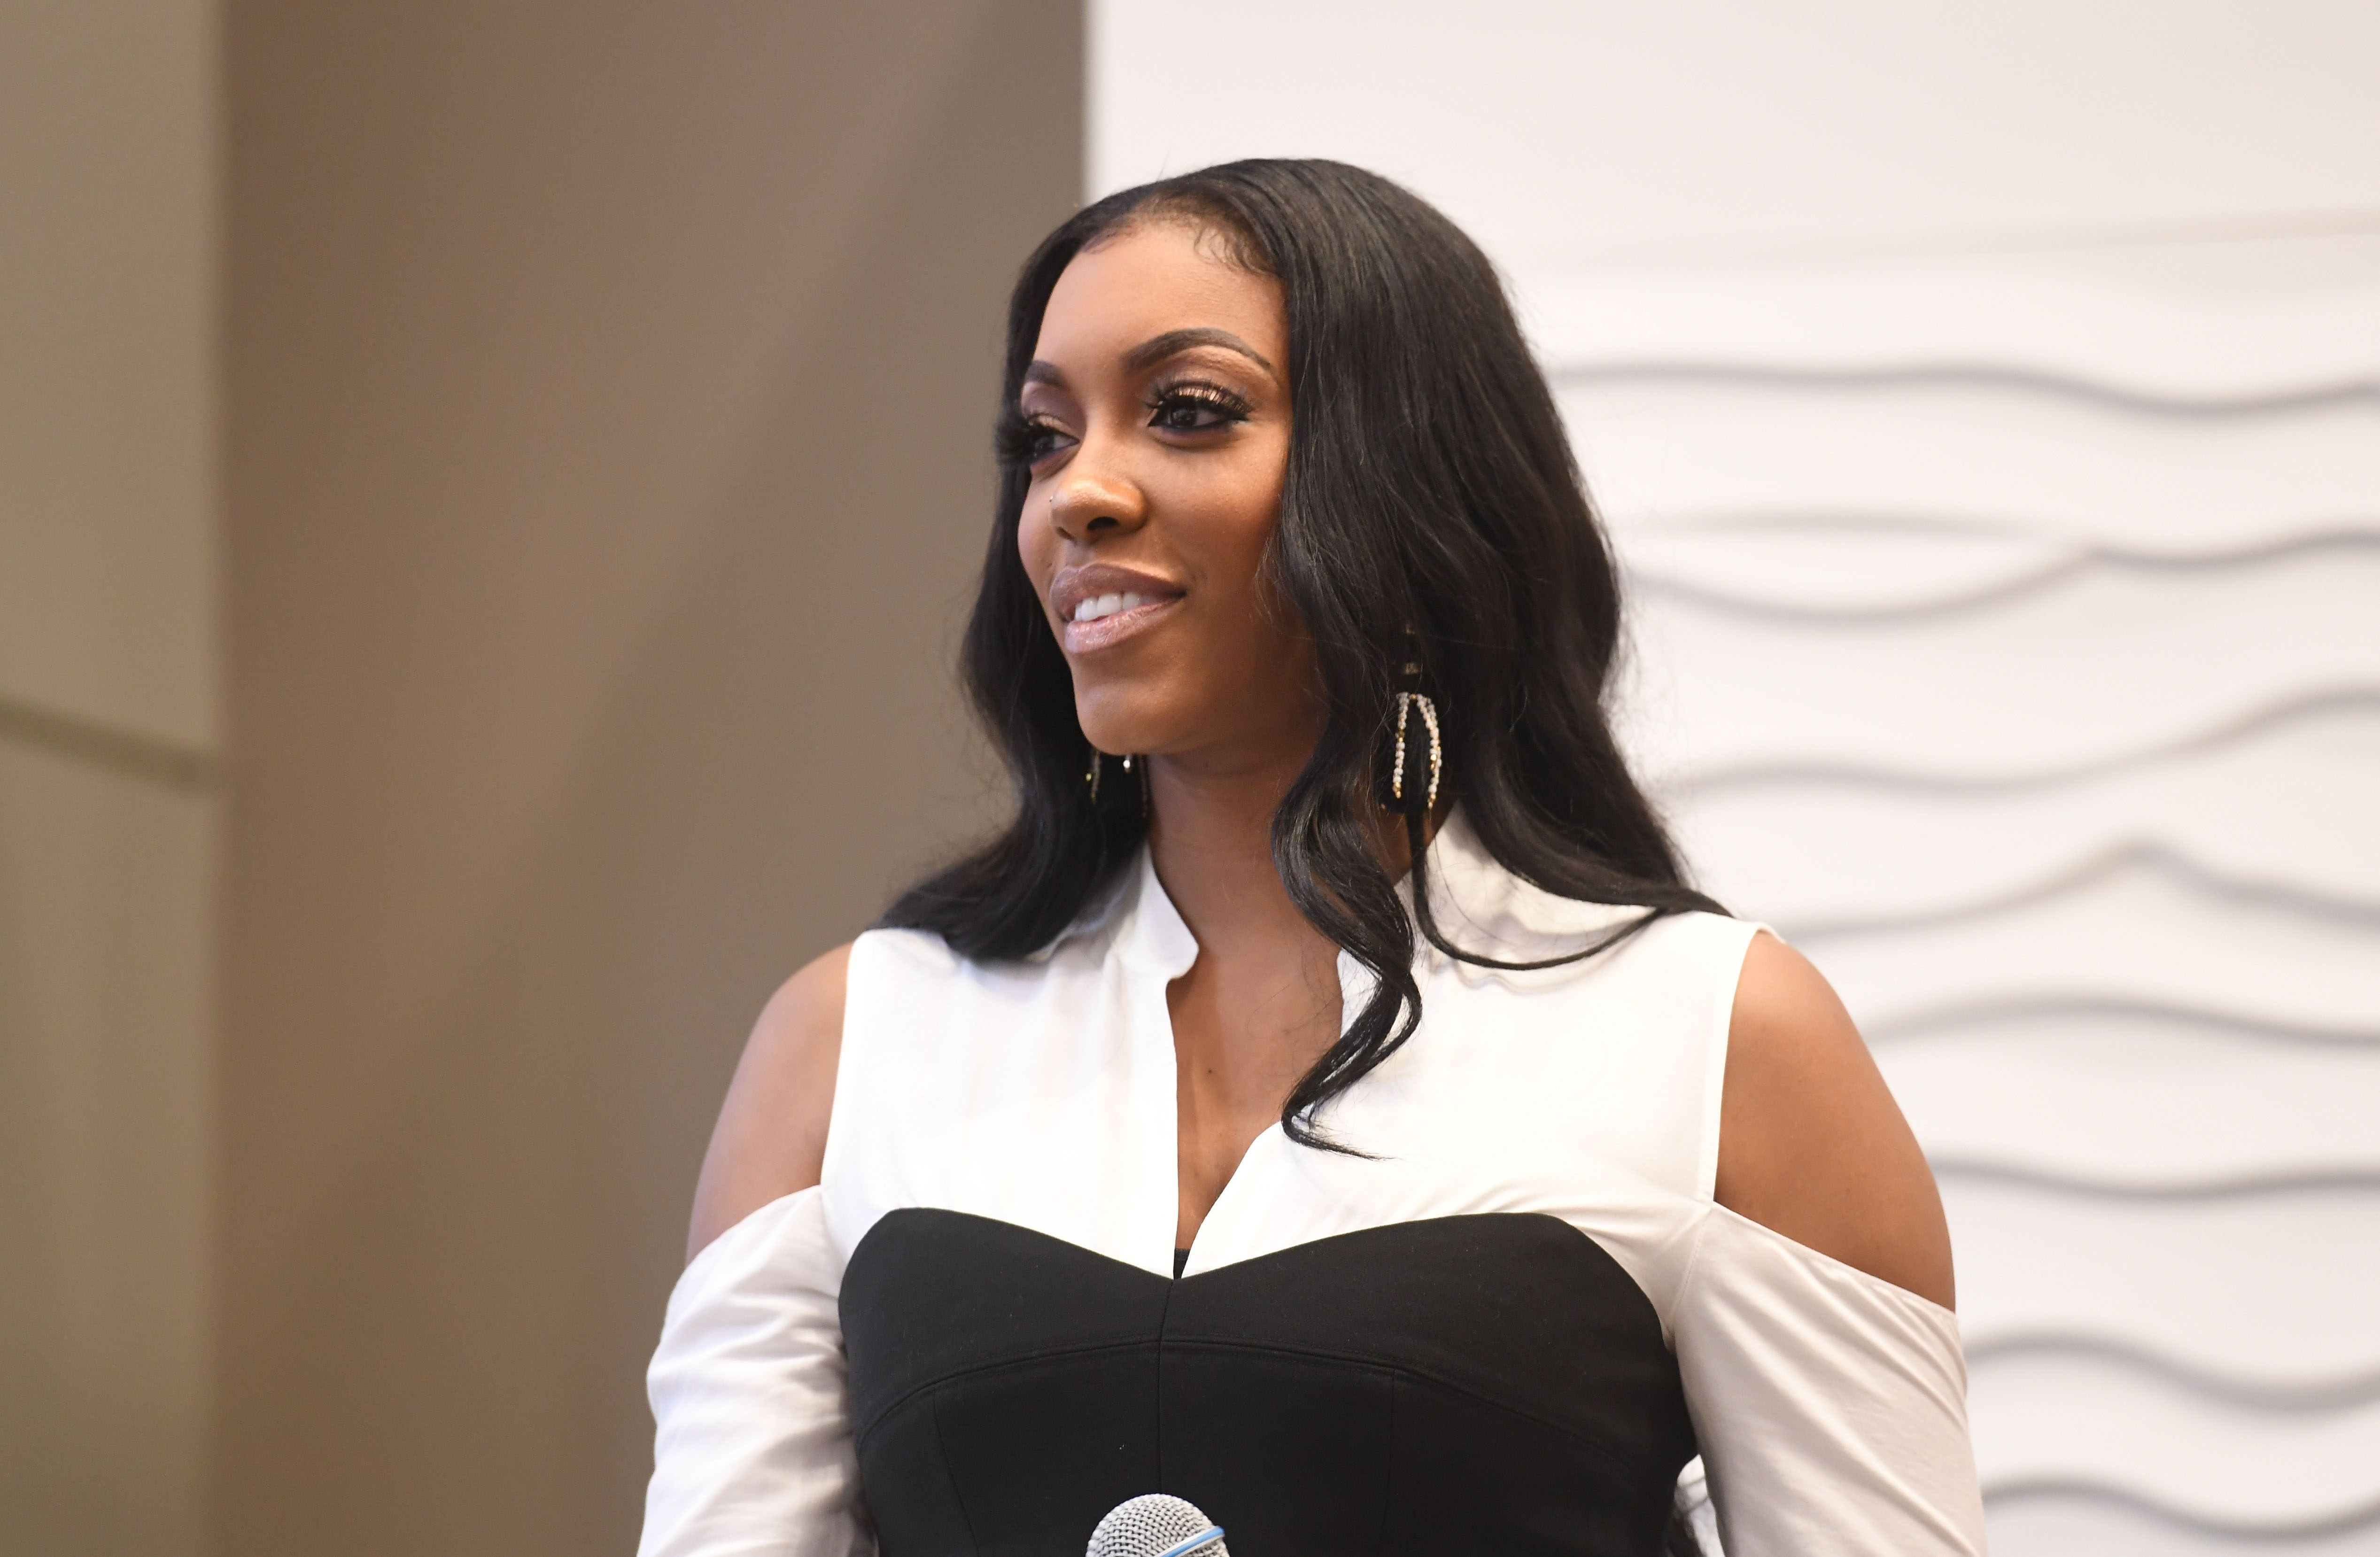 TV personality Porsha Williams speaks onstage at the 2018 Hosea's Heroes Awards at Loudermilk Conference Center on February 25, 2018 | Photo: Getty Images